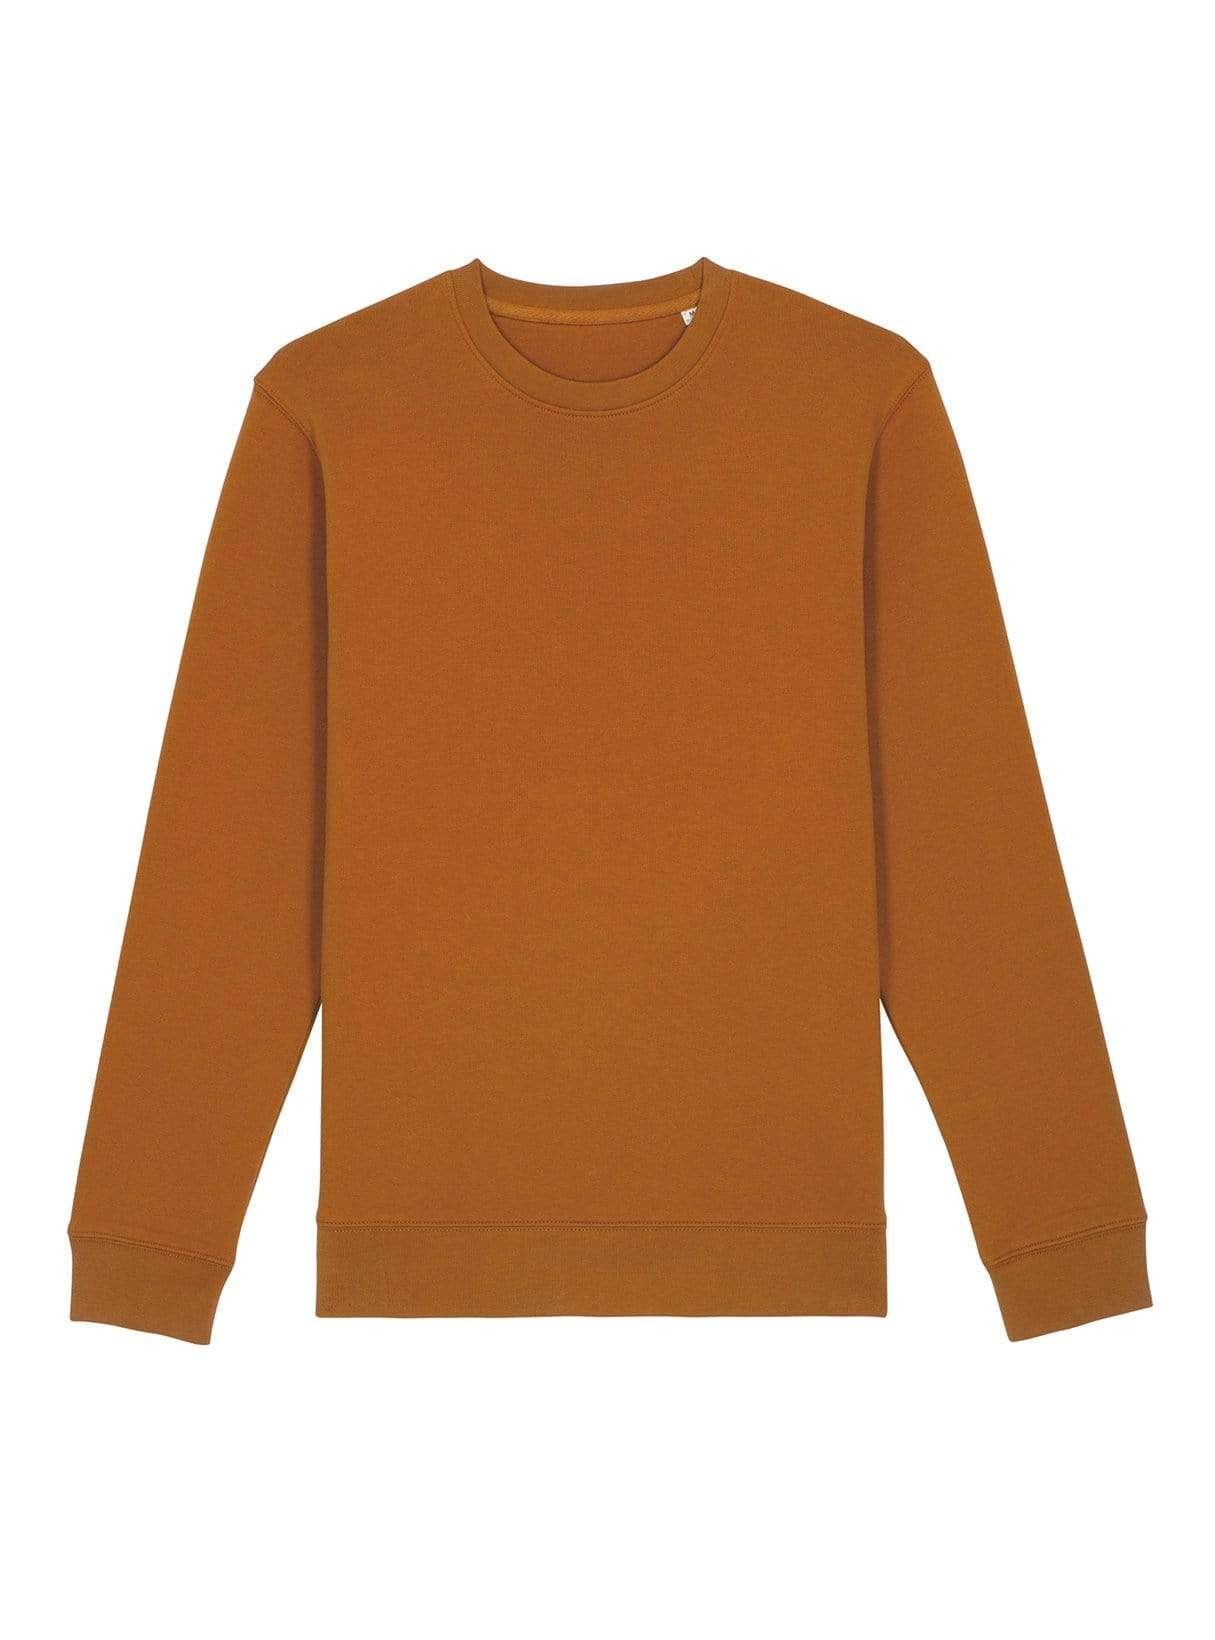 Unisex sweater - roasted orange